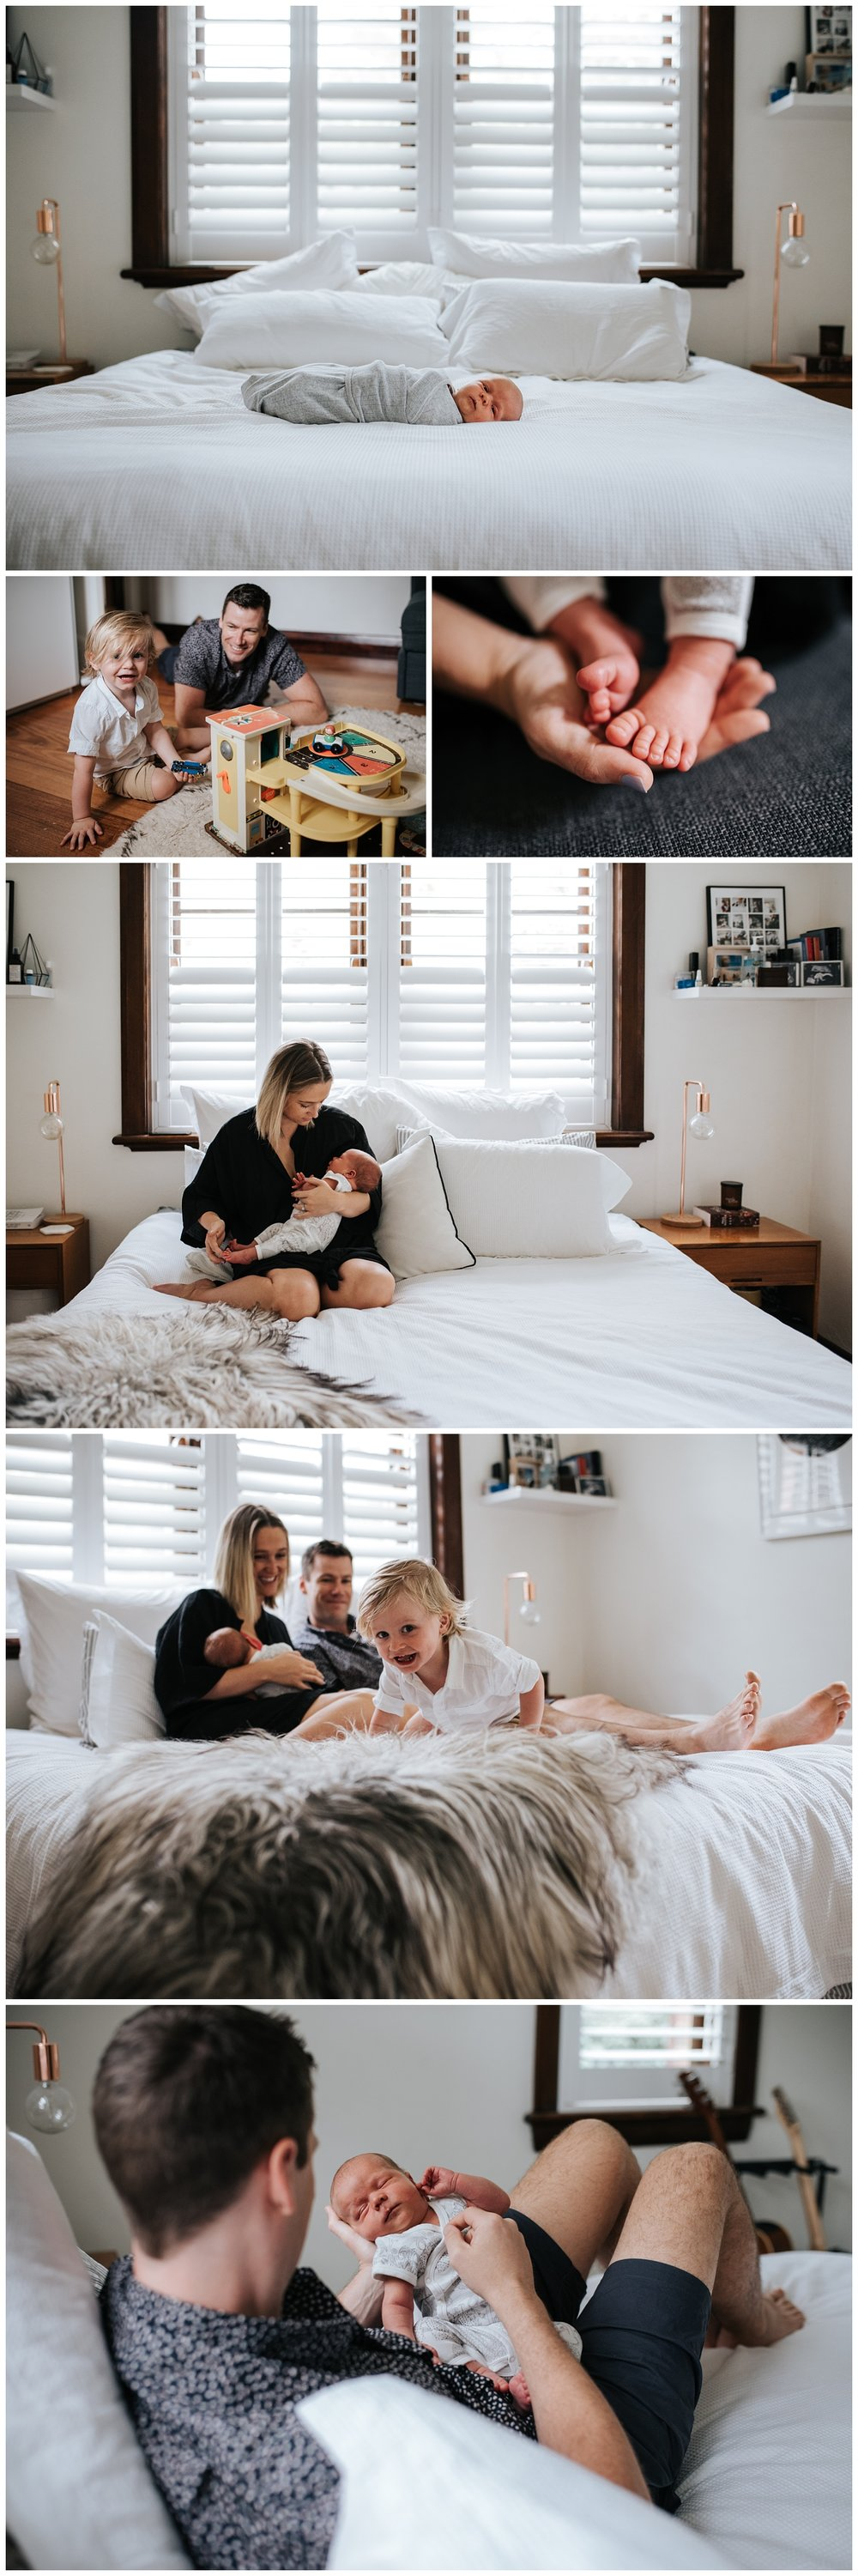 camberwell newborn photographer